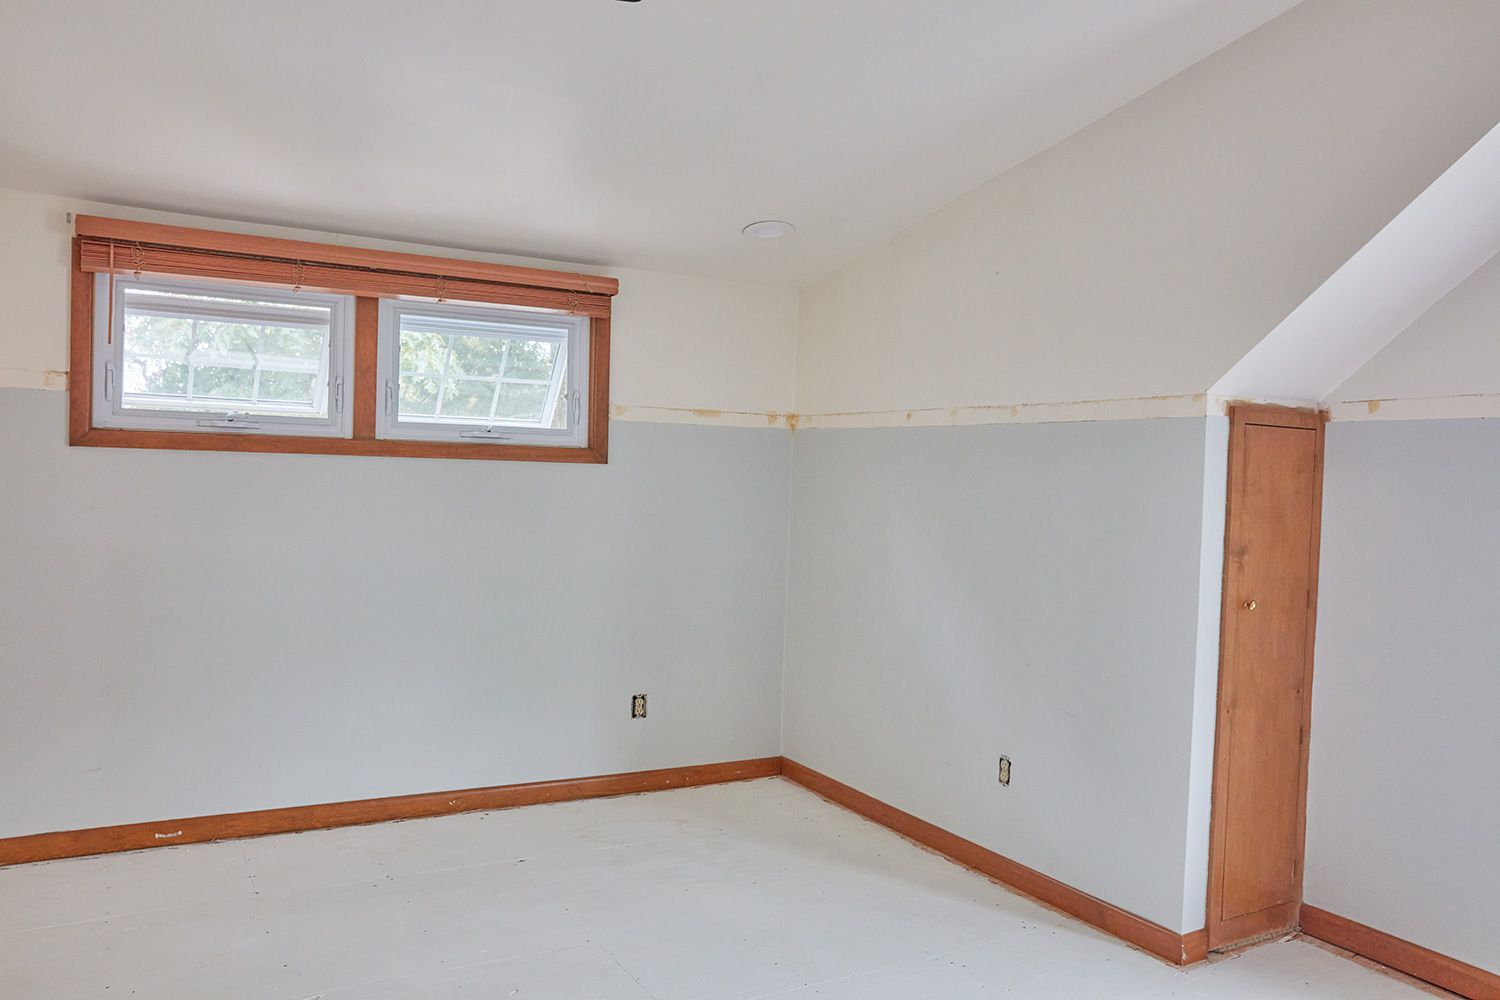 Empty room before painting